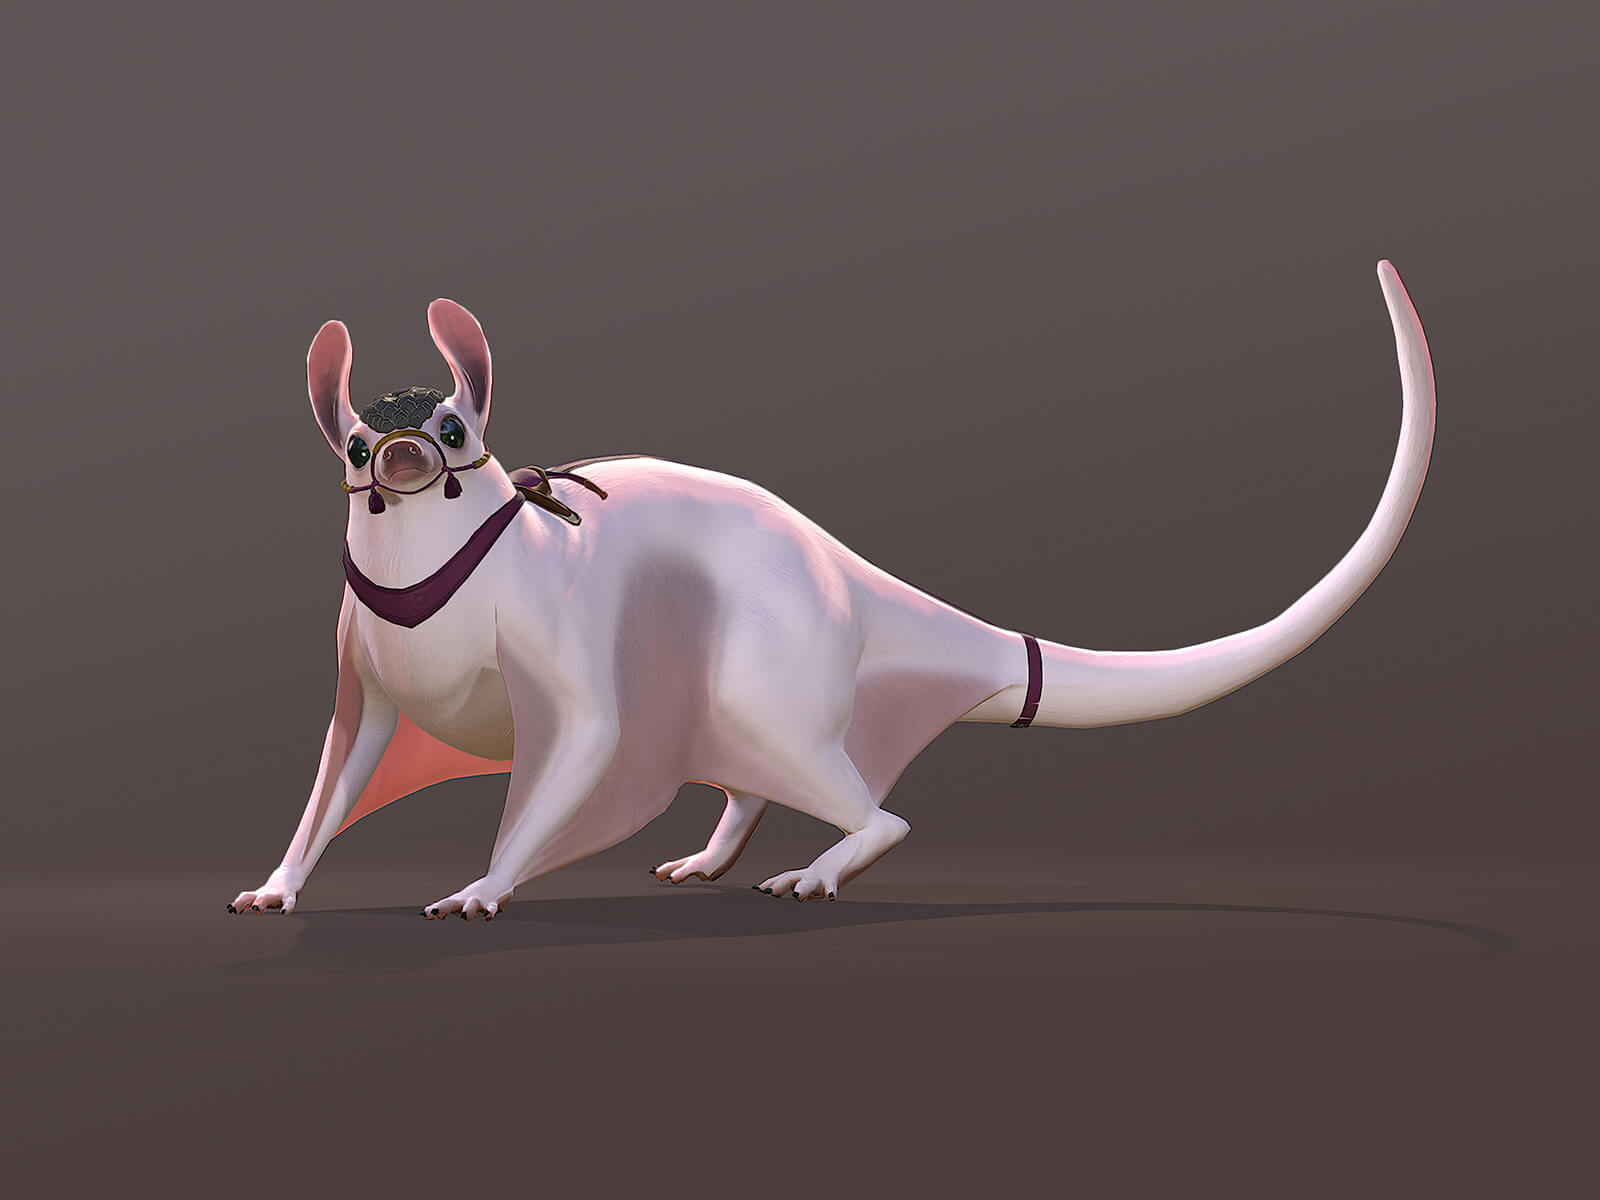 computer-generated 3D model of a character that resembles a rat, with webbed legs